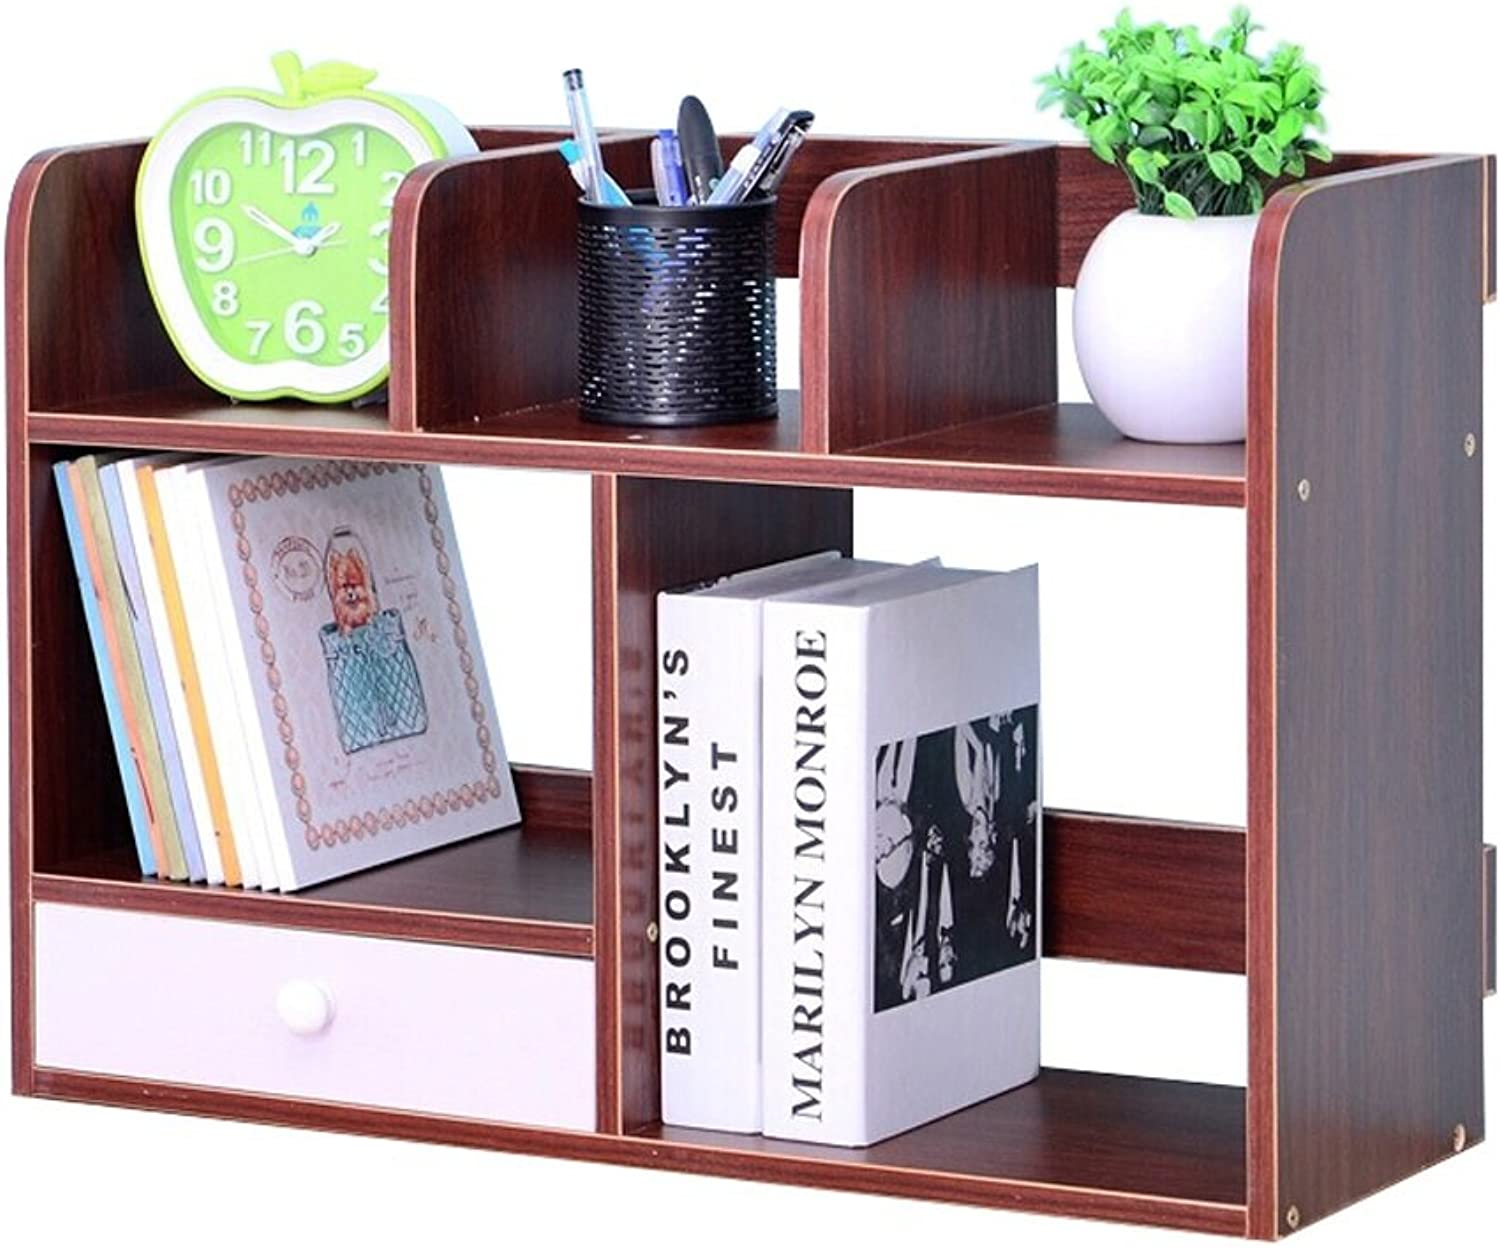 Nordic Style with Drawers Wooden Desktop Bookshelf Large Space Bookcase Bookshelf